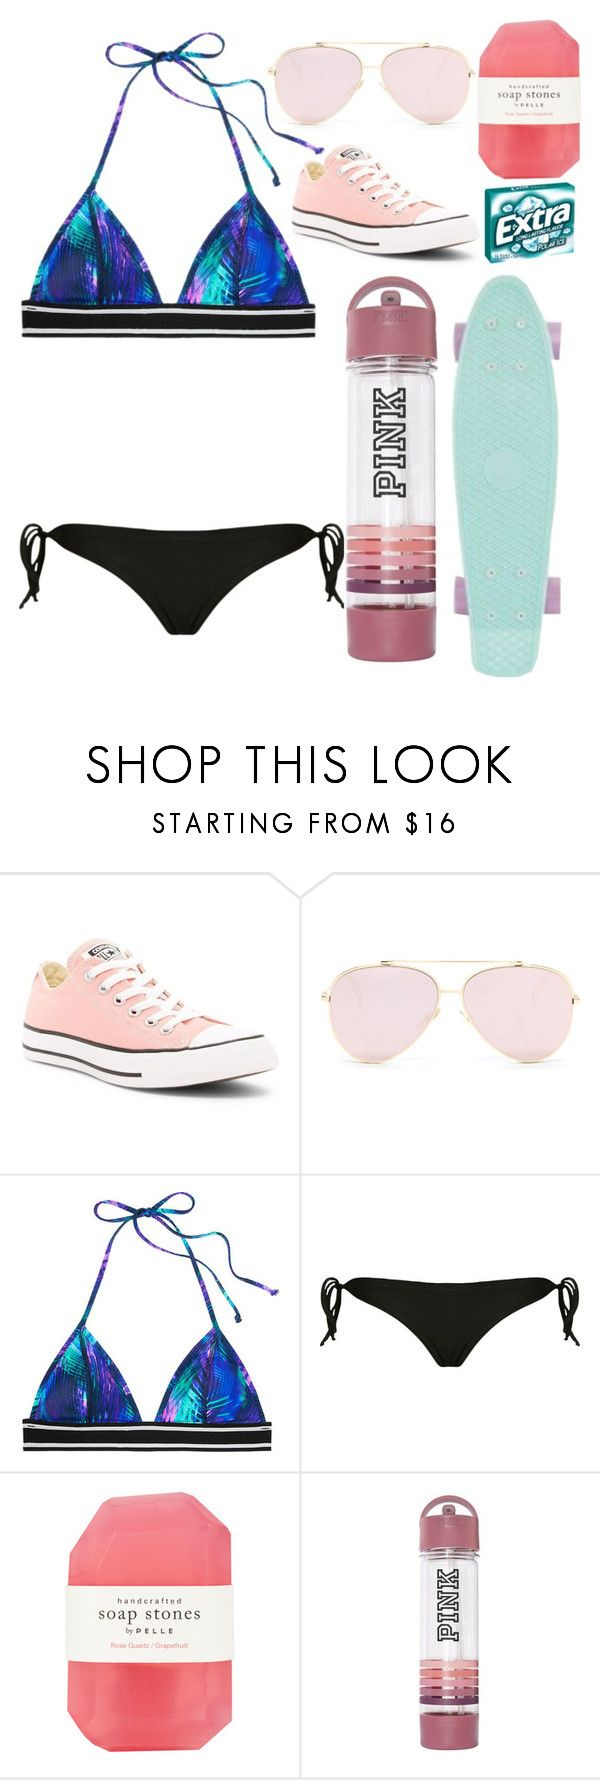 """penny boarding"" by lydiaann05 ❤ liked on Polyvore featuring Converse, Victoria's Secret, Skinbiquini and Pelle"